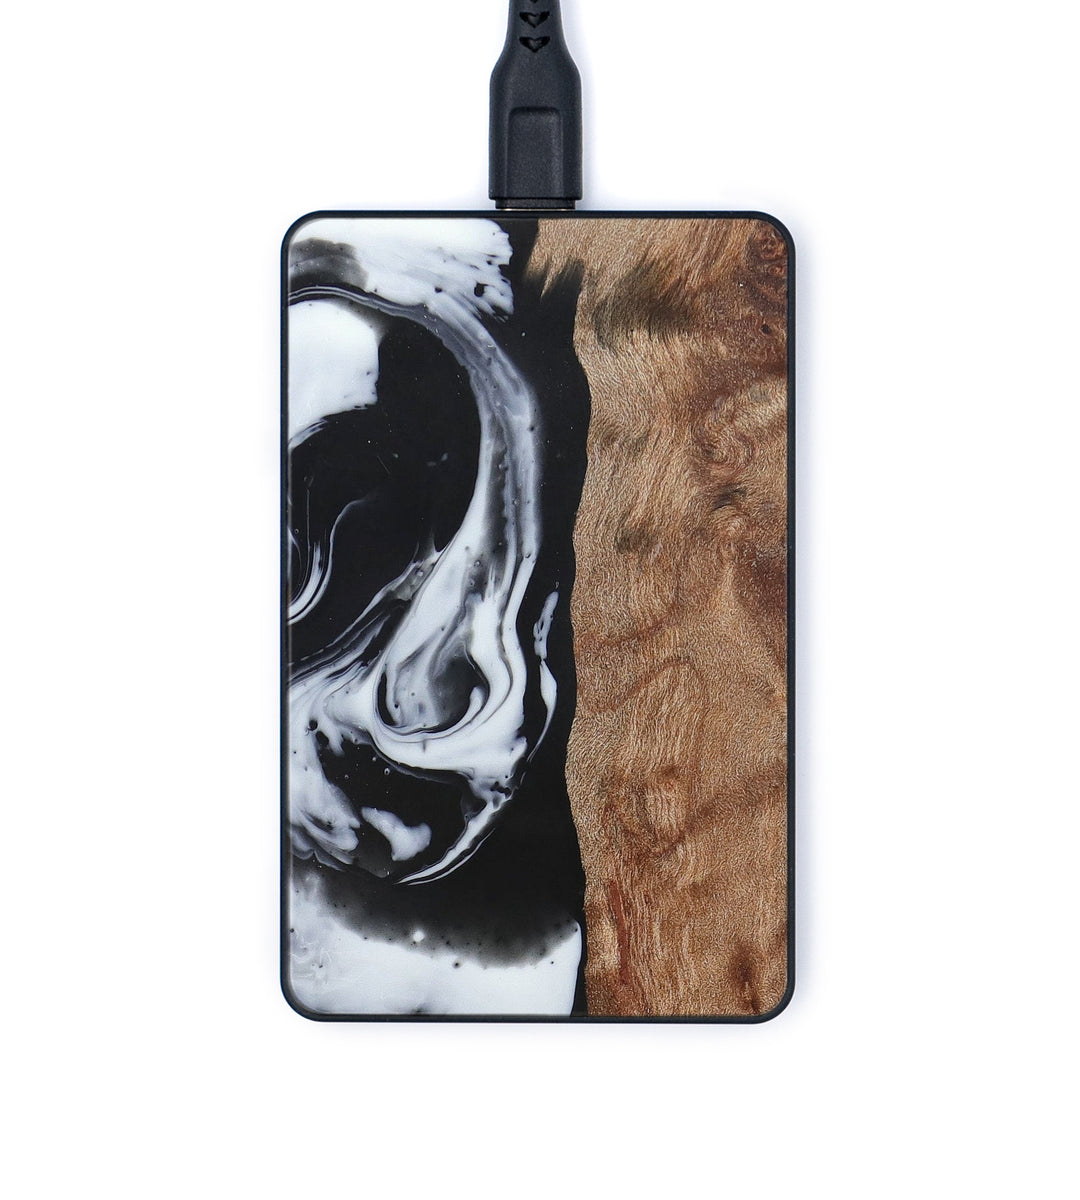 Thin Wood+Resin Wireless Charger - Claudia (Black & White, 393681)